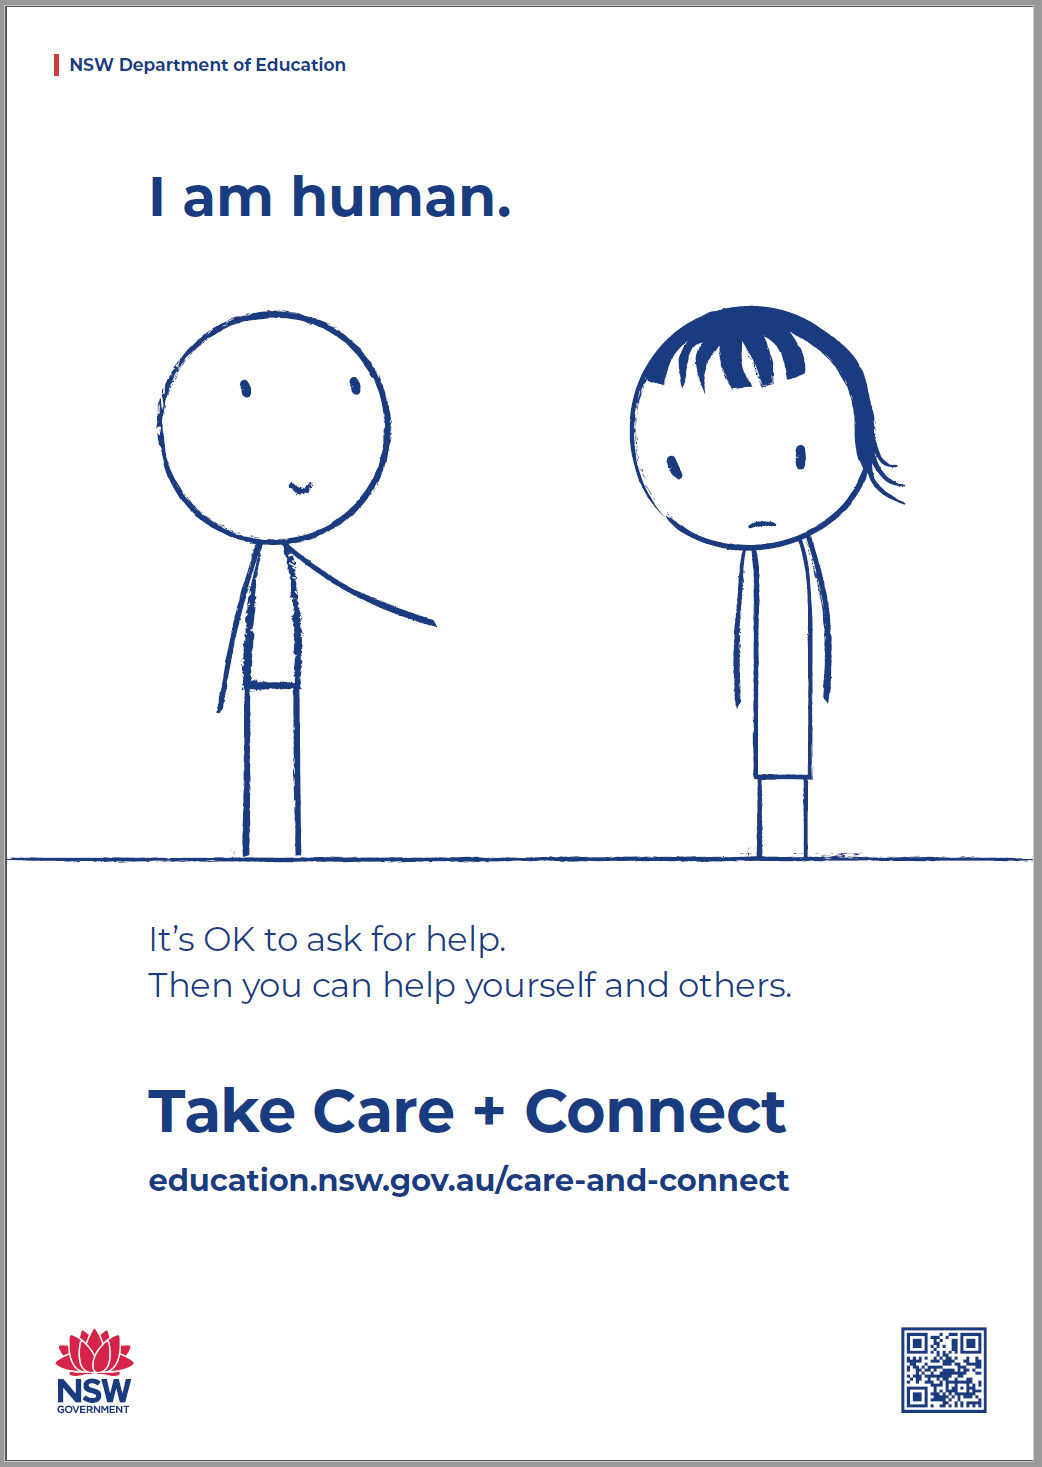 The Care and Connect Awareness poster thumbnail, featuring two figures with the text 'It's OK to ask for help. Then you can help yourself and others' underneath.